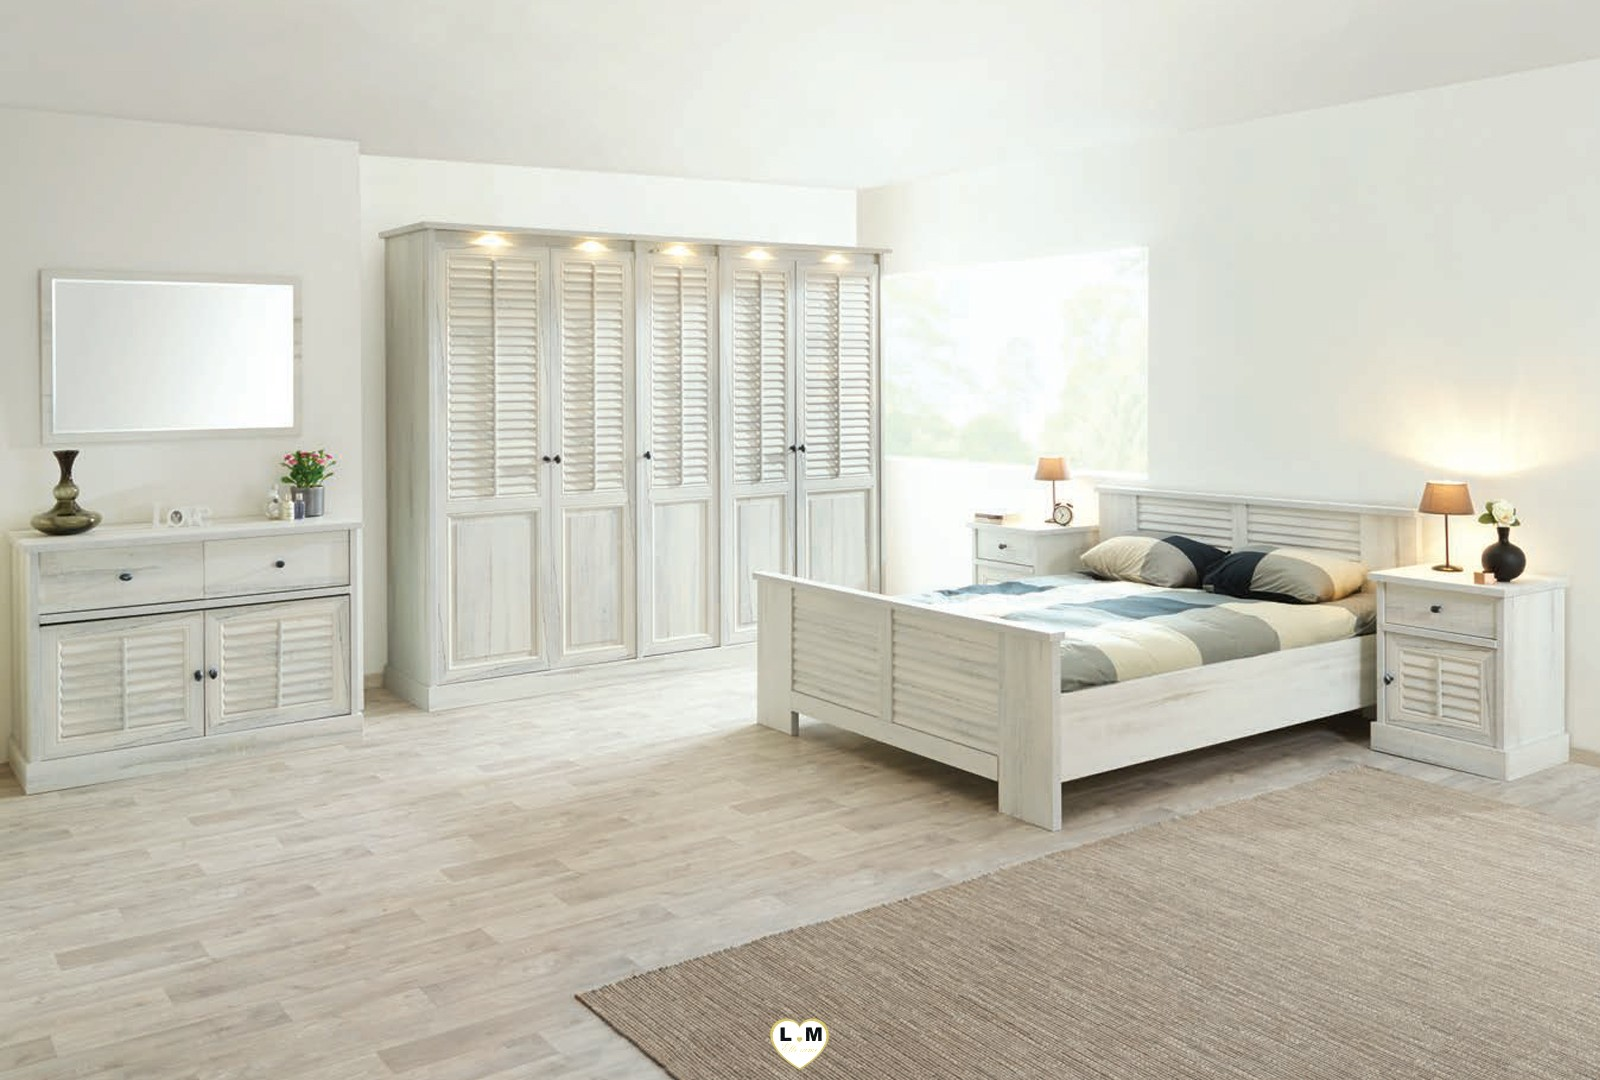 merida bois blanc vieilli ensemble chambre a coucher lignemeuble com. Black Bedroom Furniture Sets. Home Design Ideas